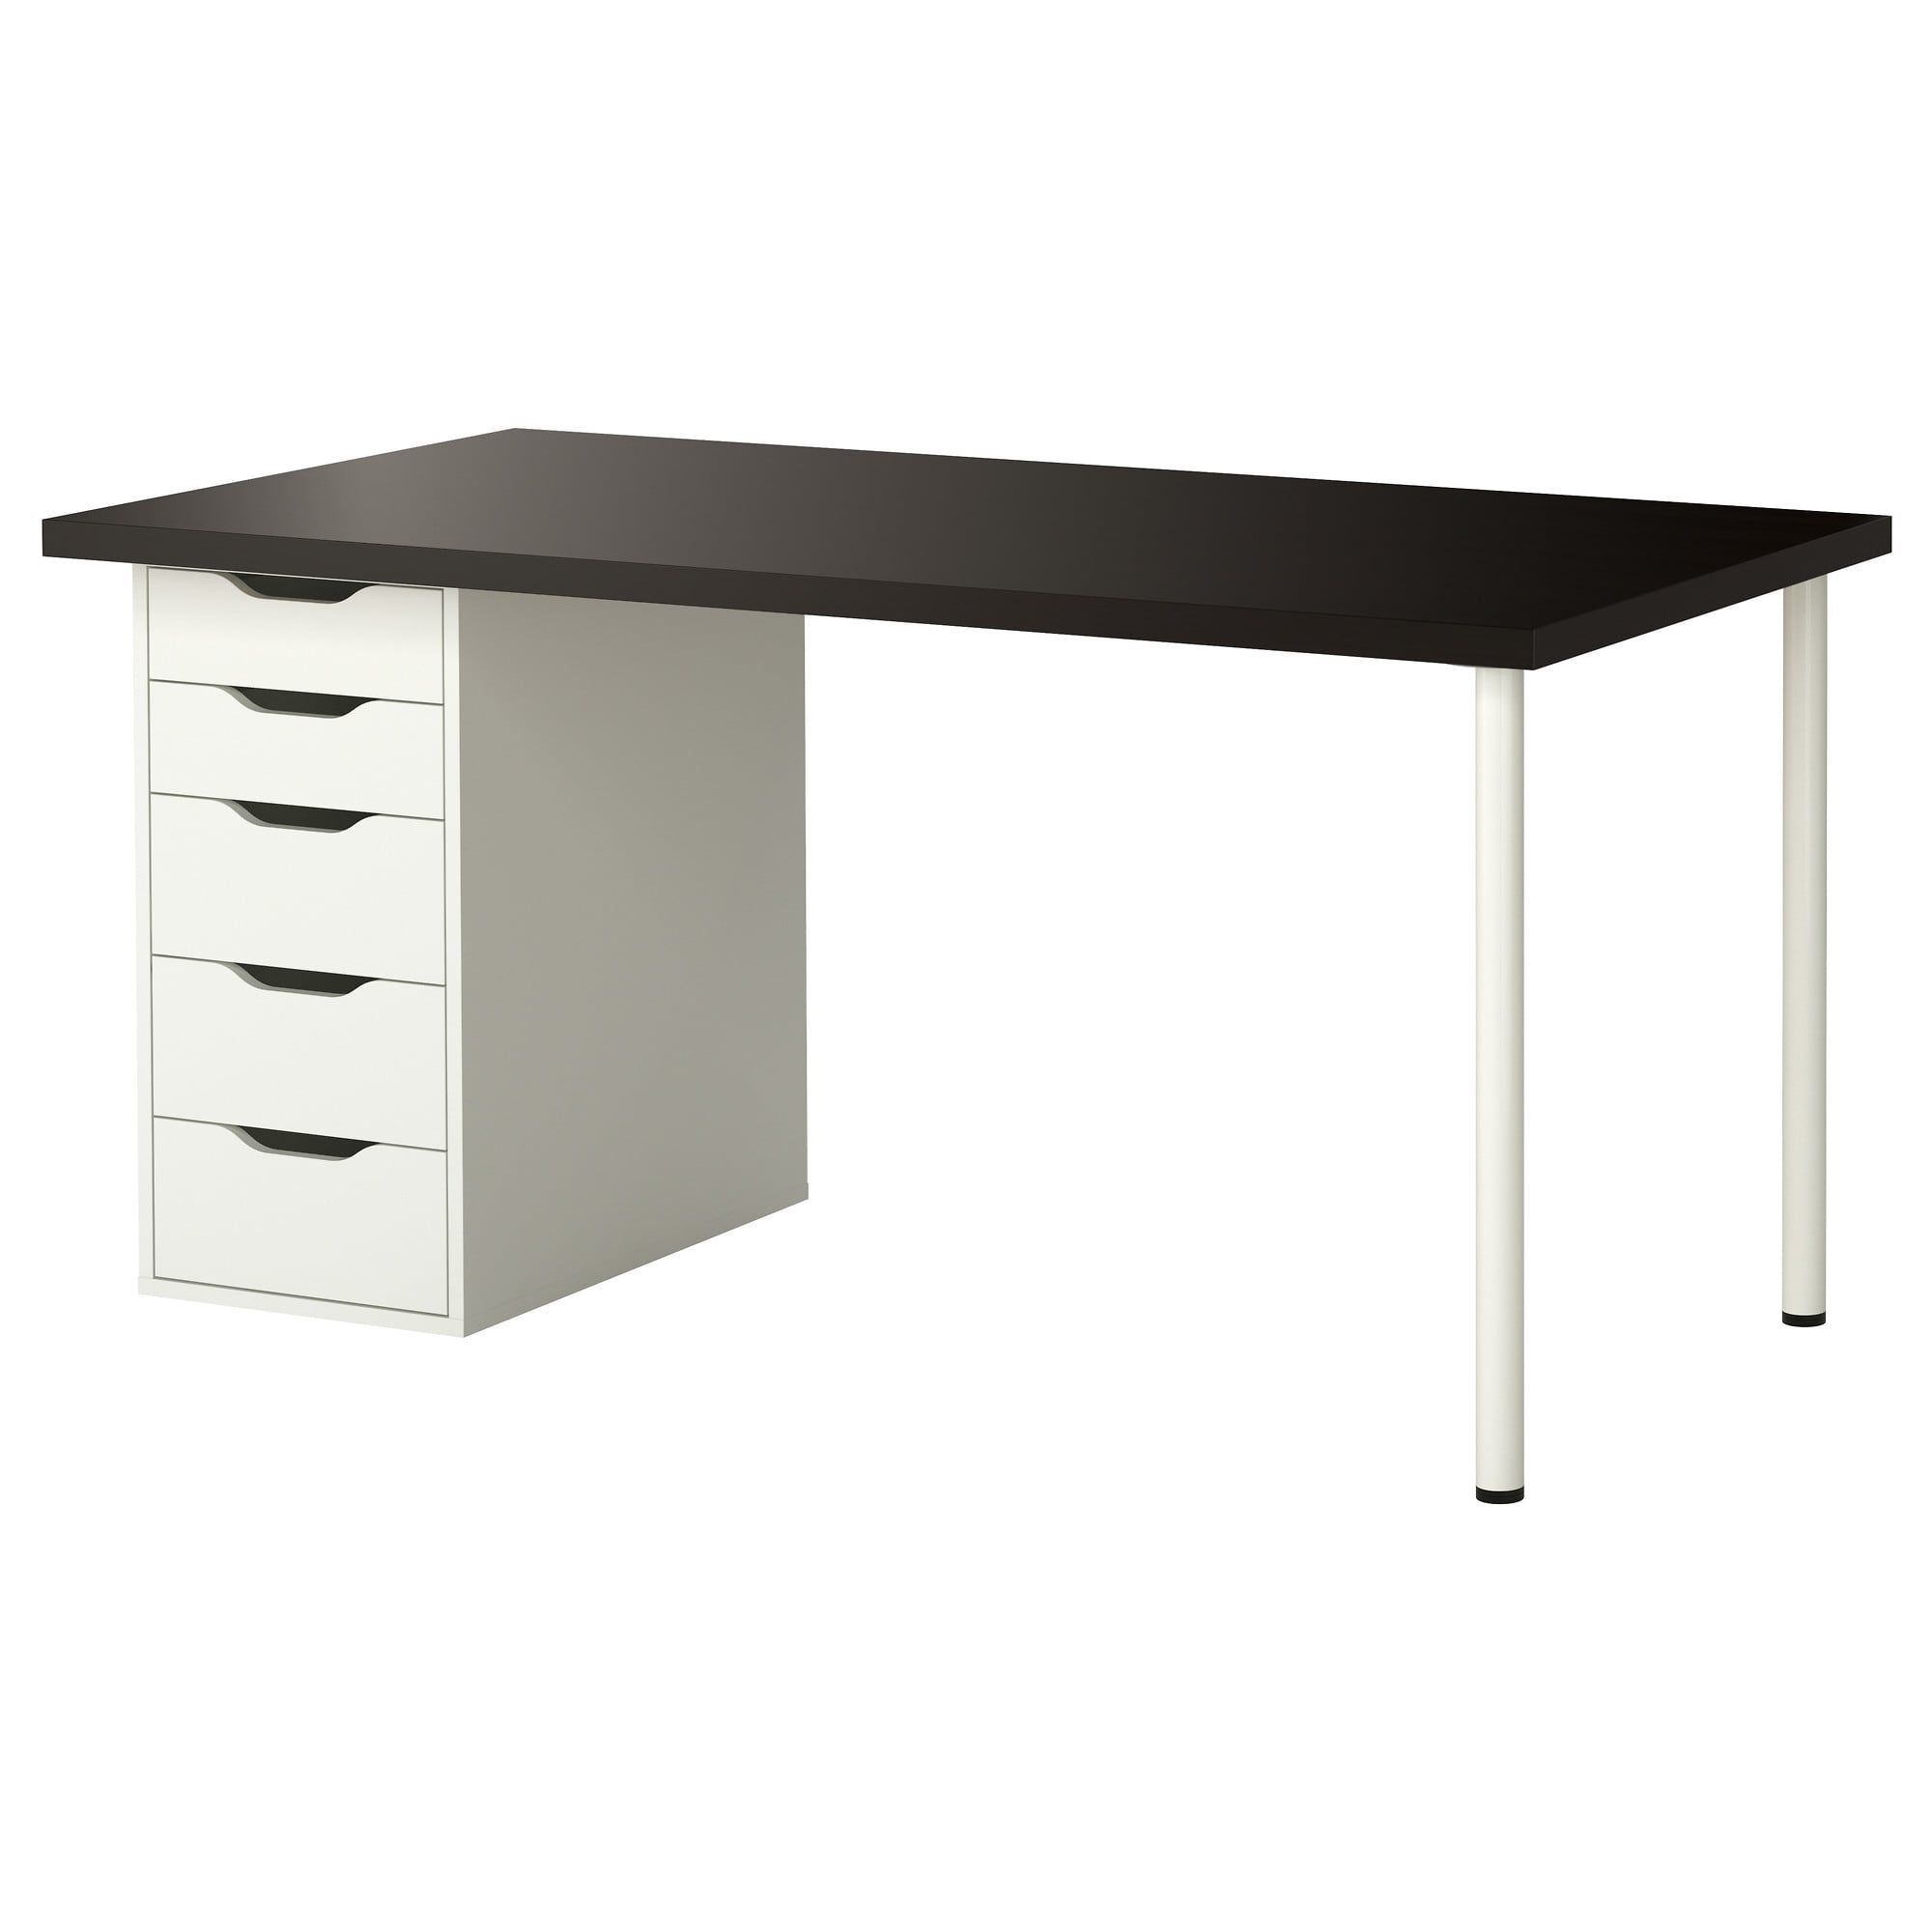 Linnmon Alex Table Black Brown White Find It Here Ikea In 2020 Ikea Best Ikea Home Office Furniture